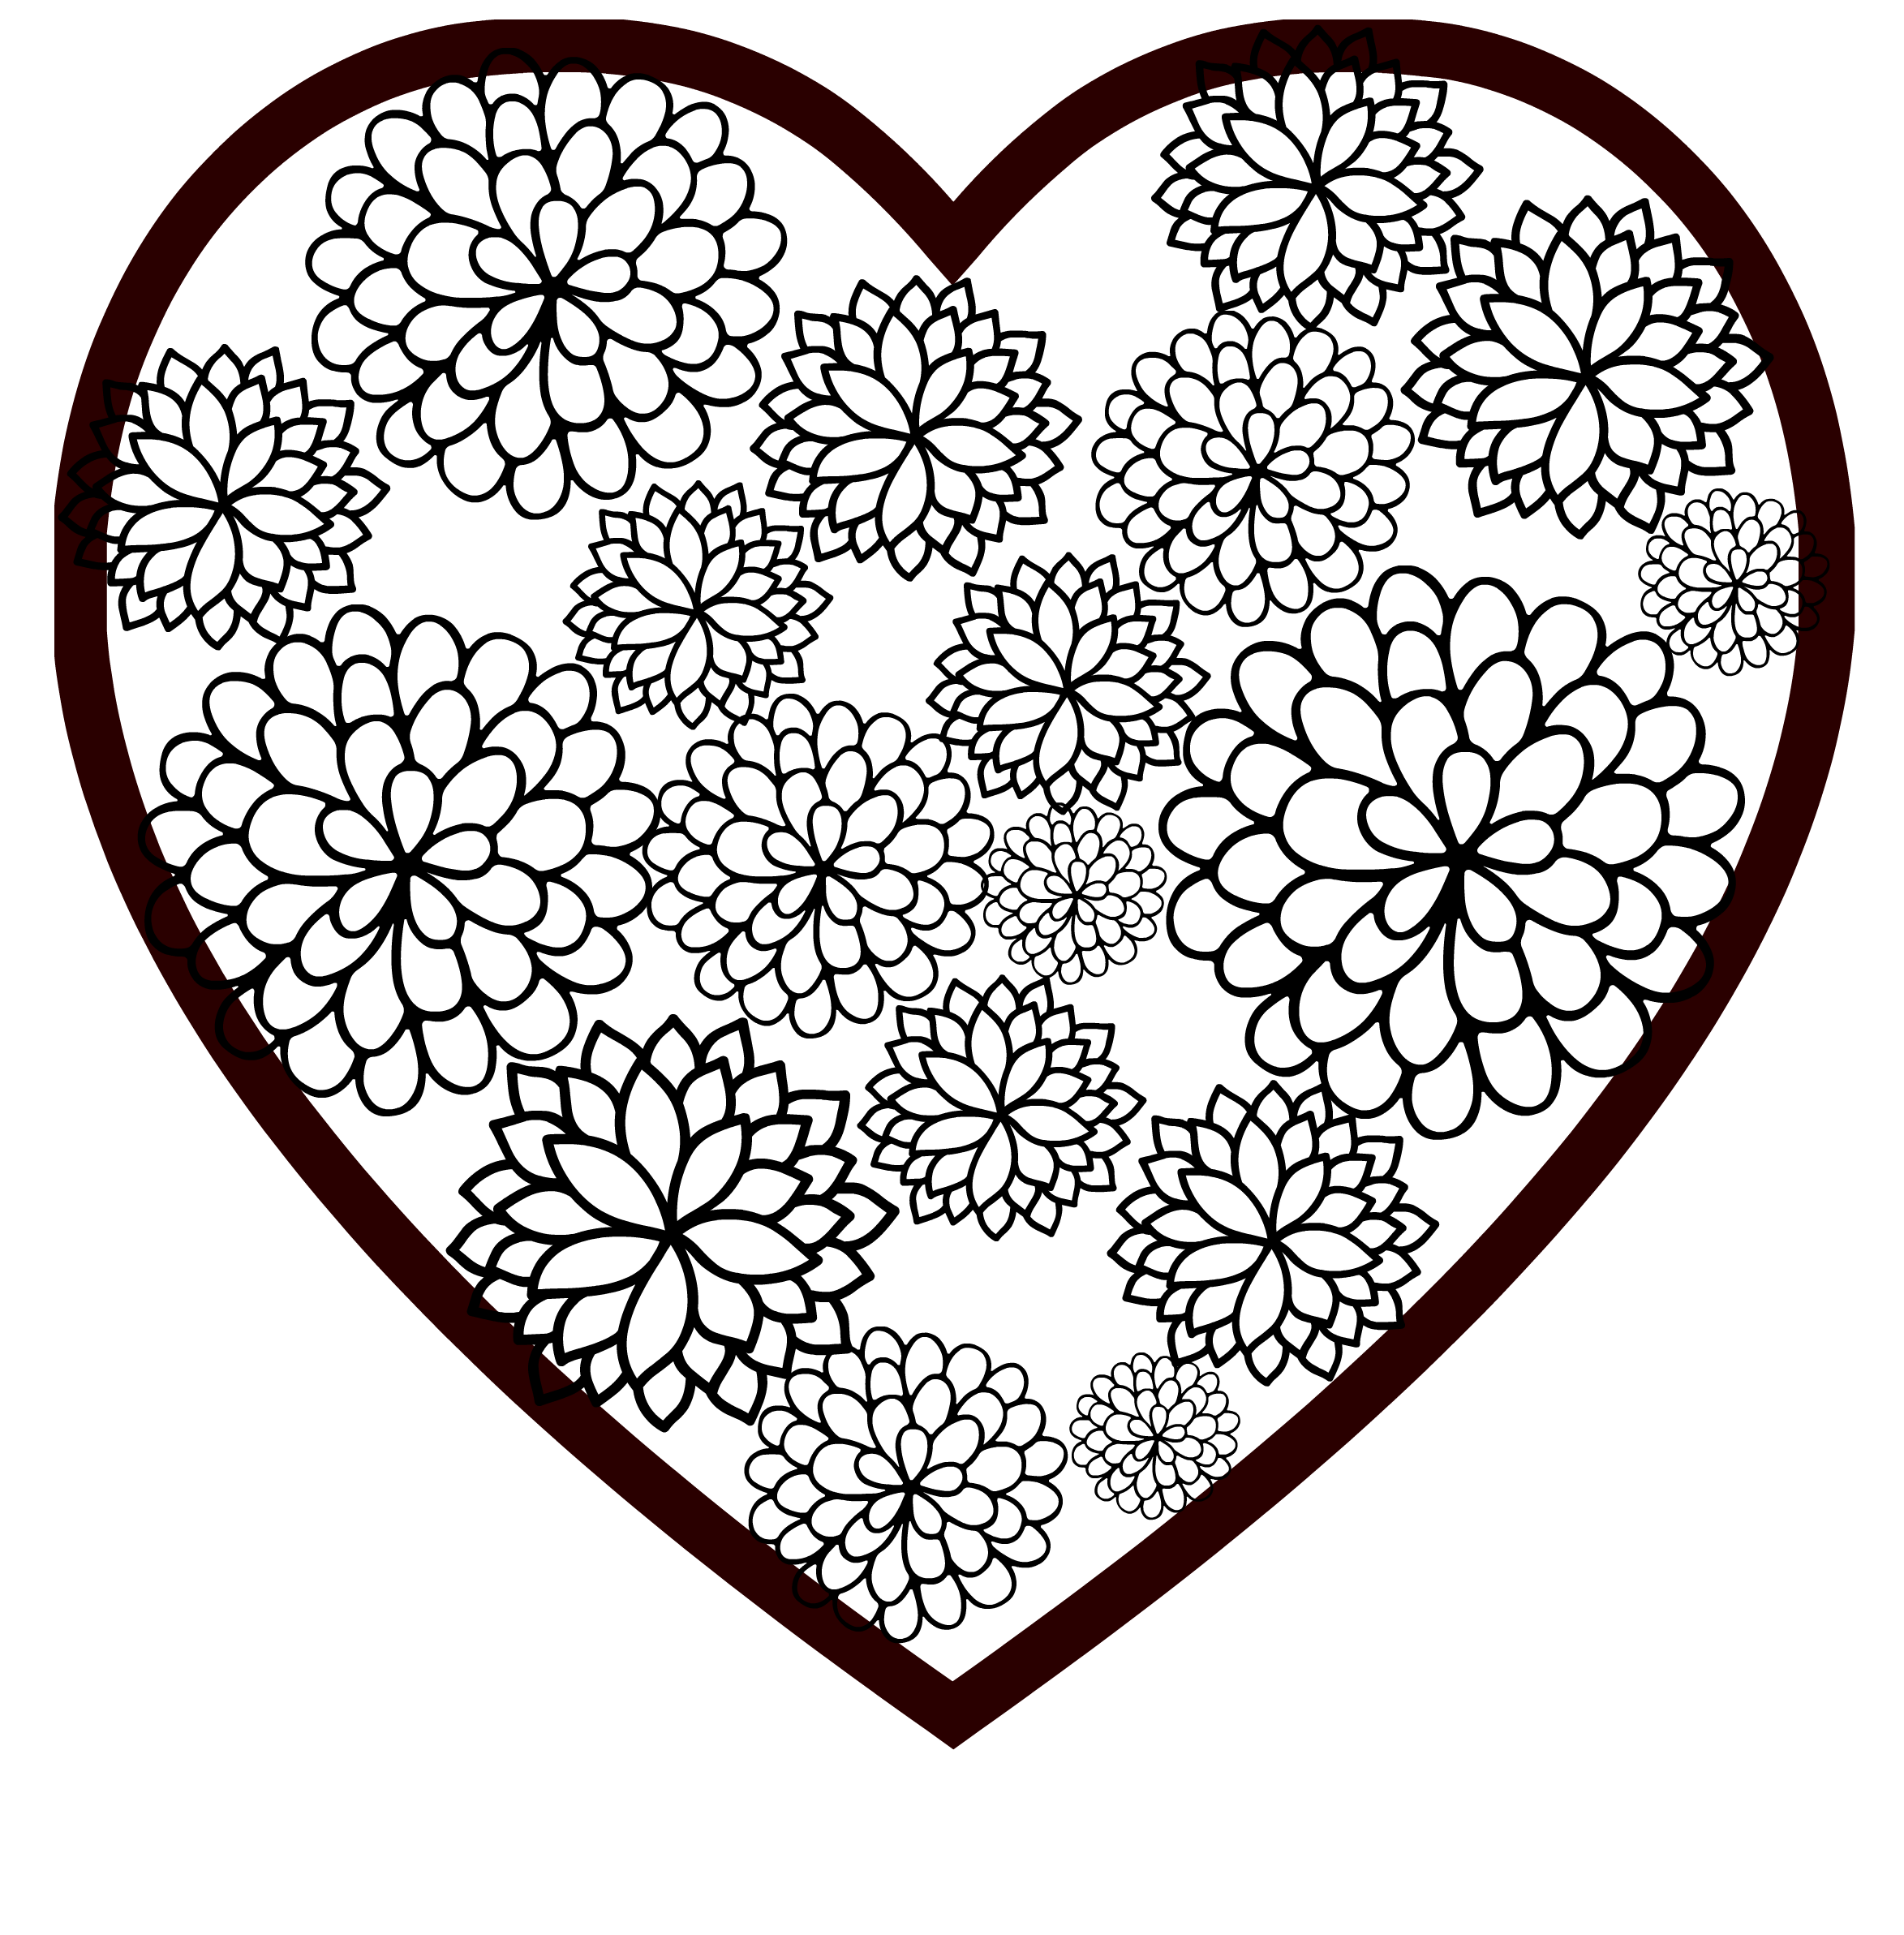 Floral Heart Valentine Printable Coloring Page - Seeing Dandy